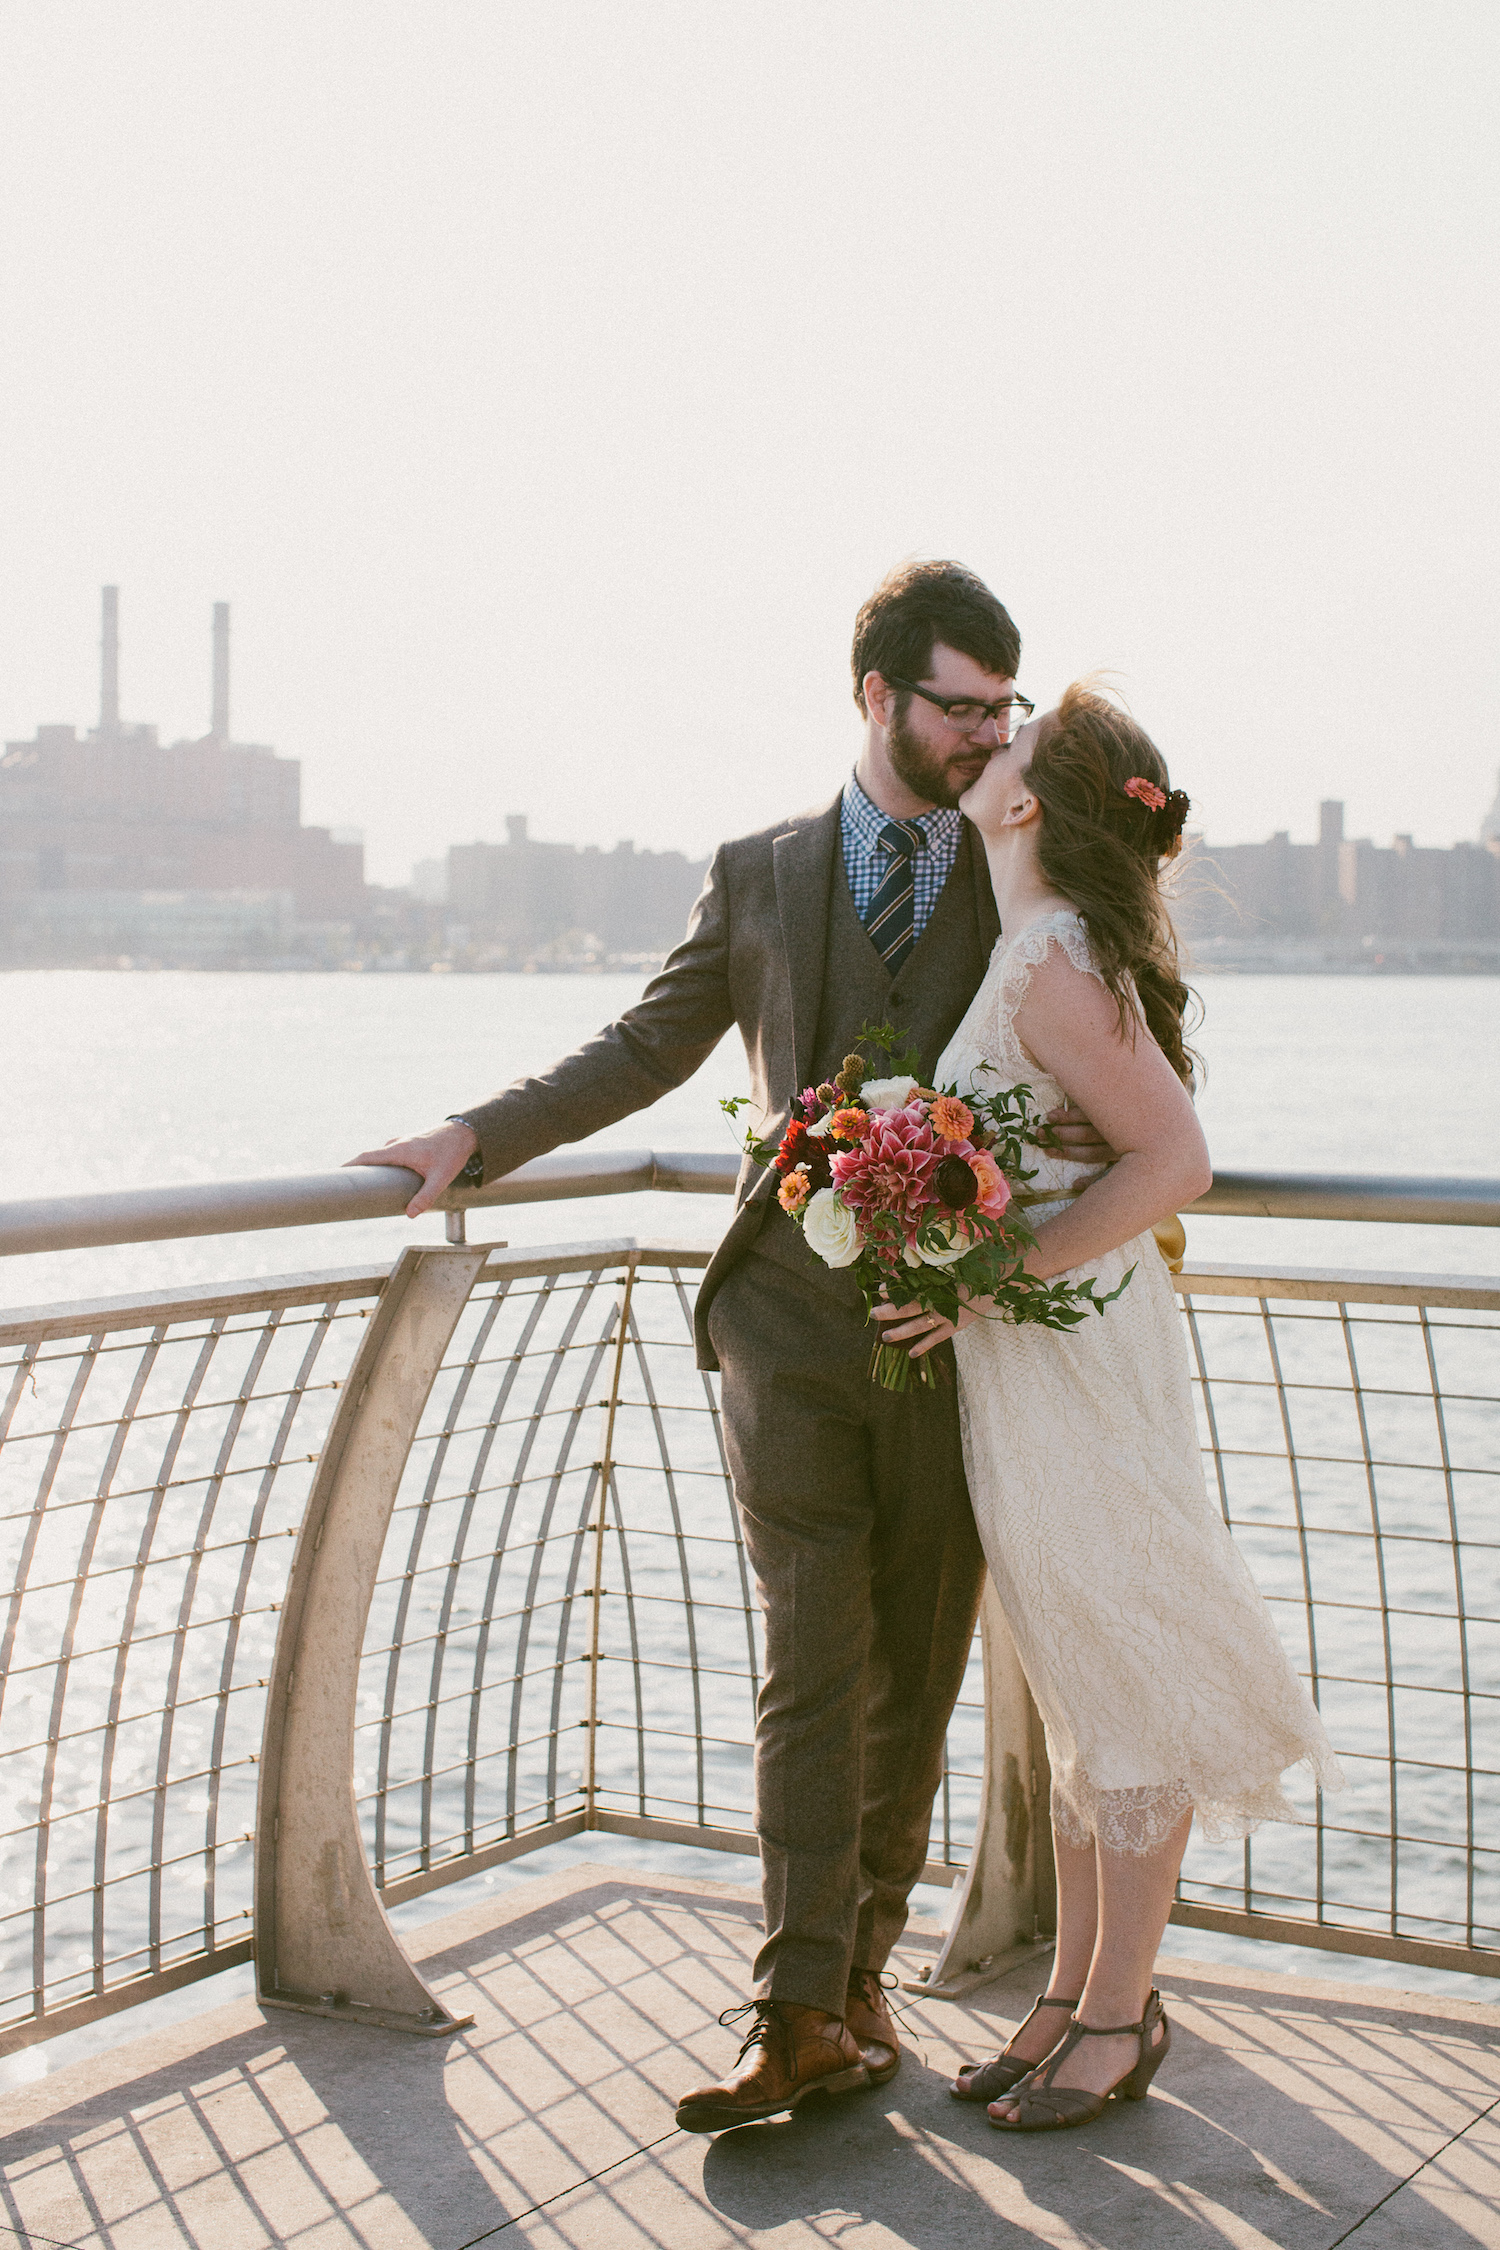 Full Aperture Floral & Corey Torpie Photography  - Brooklyn Wedding - 57.jpeg